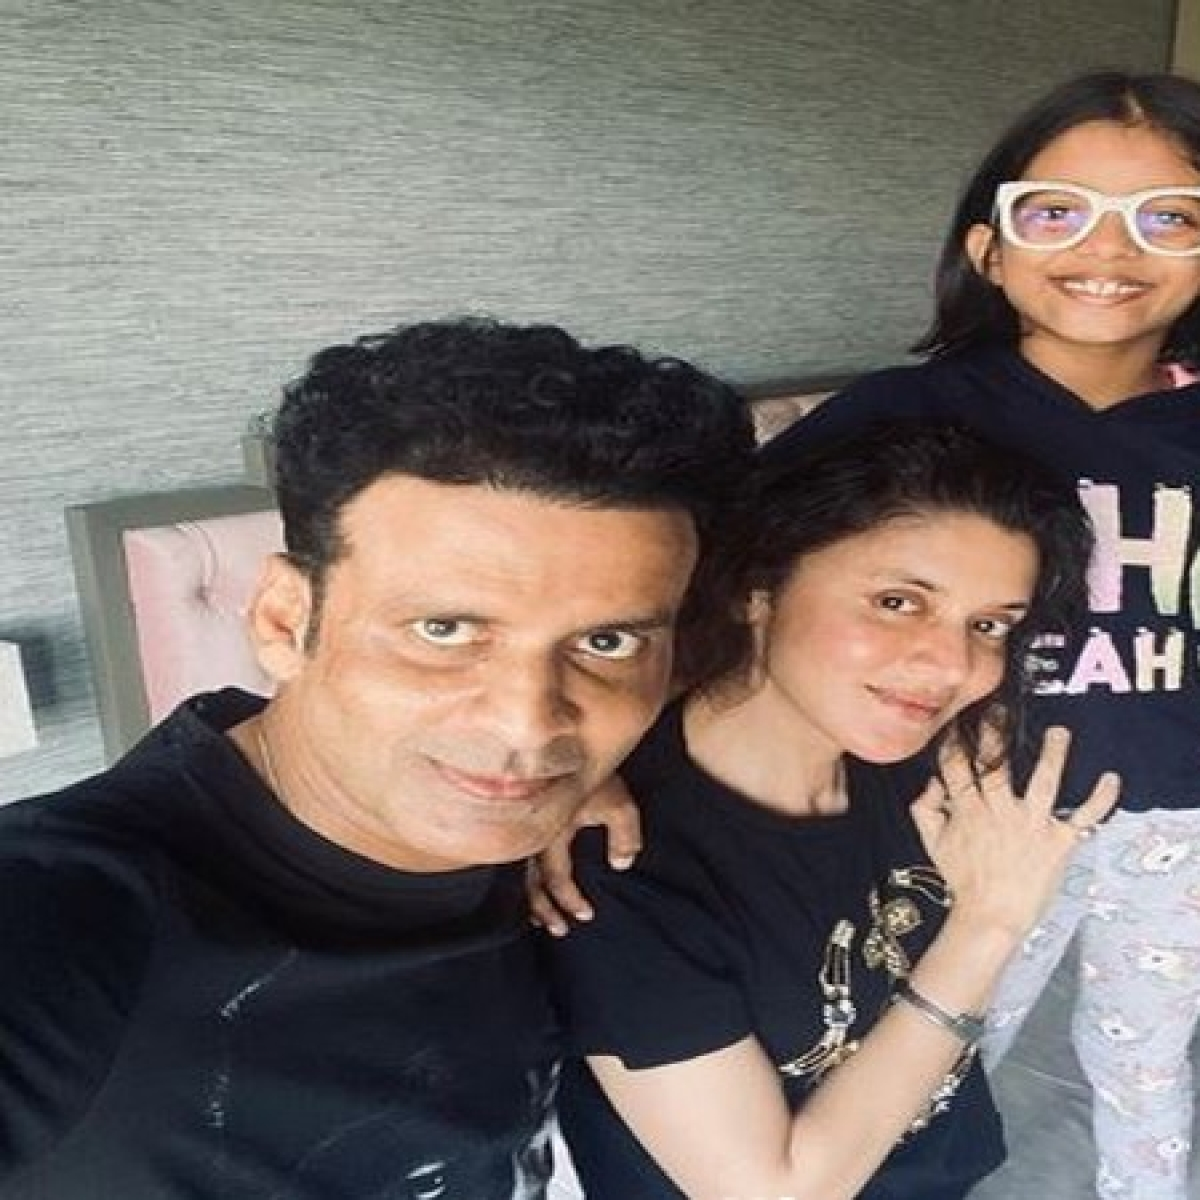 Did you know? Manoj Bajpayee's wife has starred opposite Hrithik Roshan, Ajay Devgn, and Bobby Deol